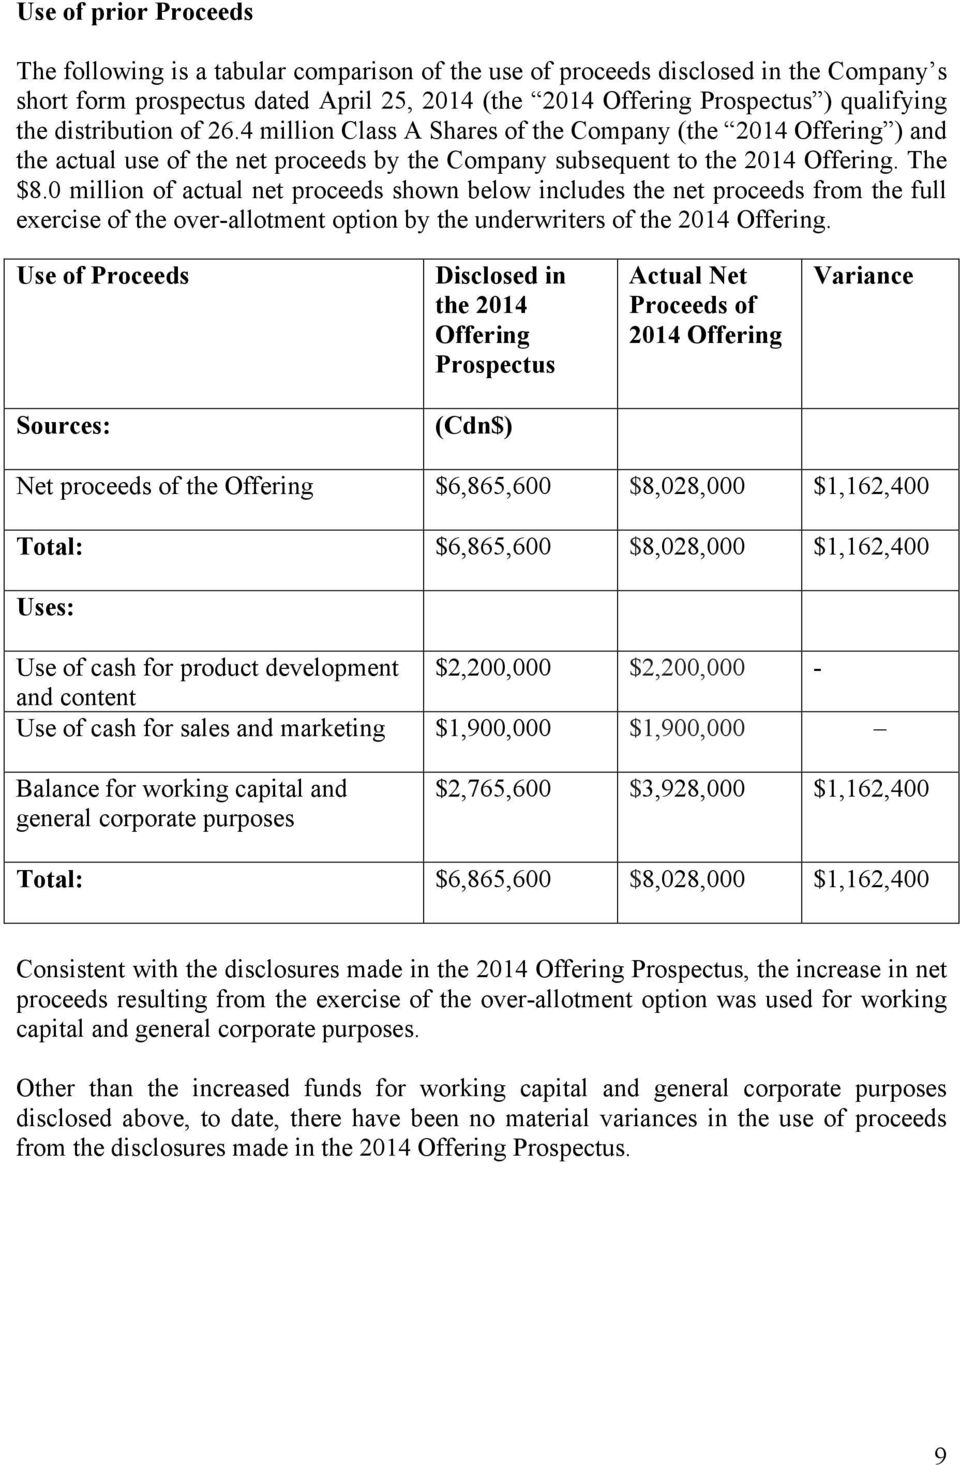 0 million of actual net proceeds shown below includes the net proceeds from the full exercise of the over-allotment option by the underwriters of the 2014 Offering.